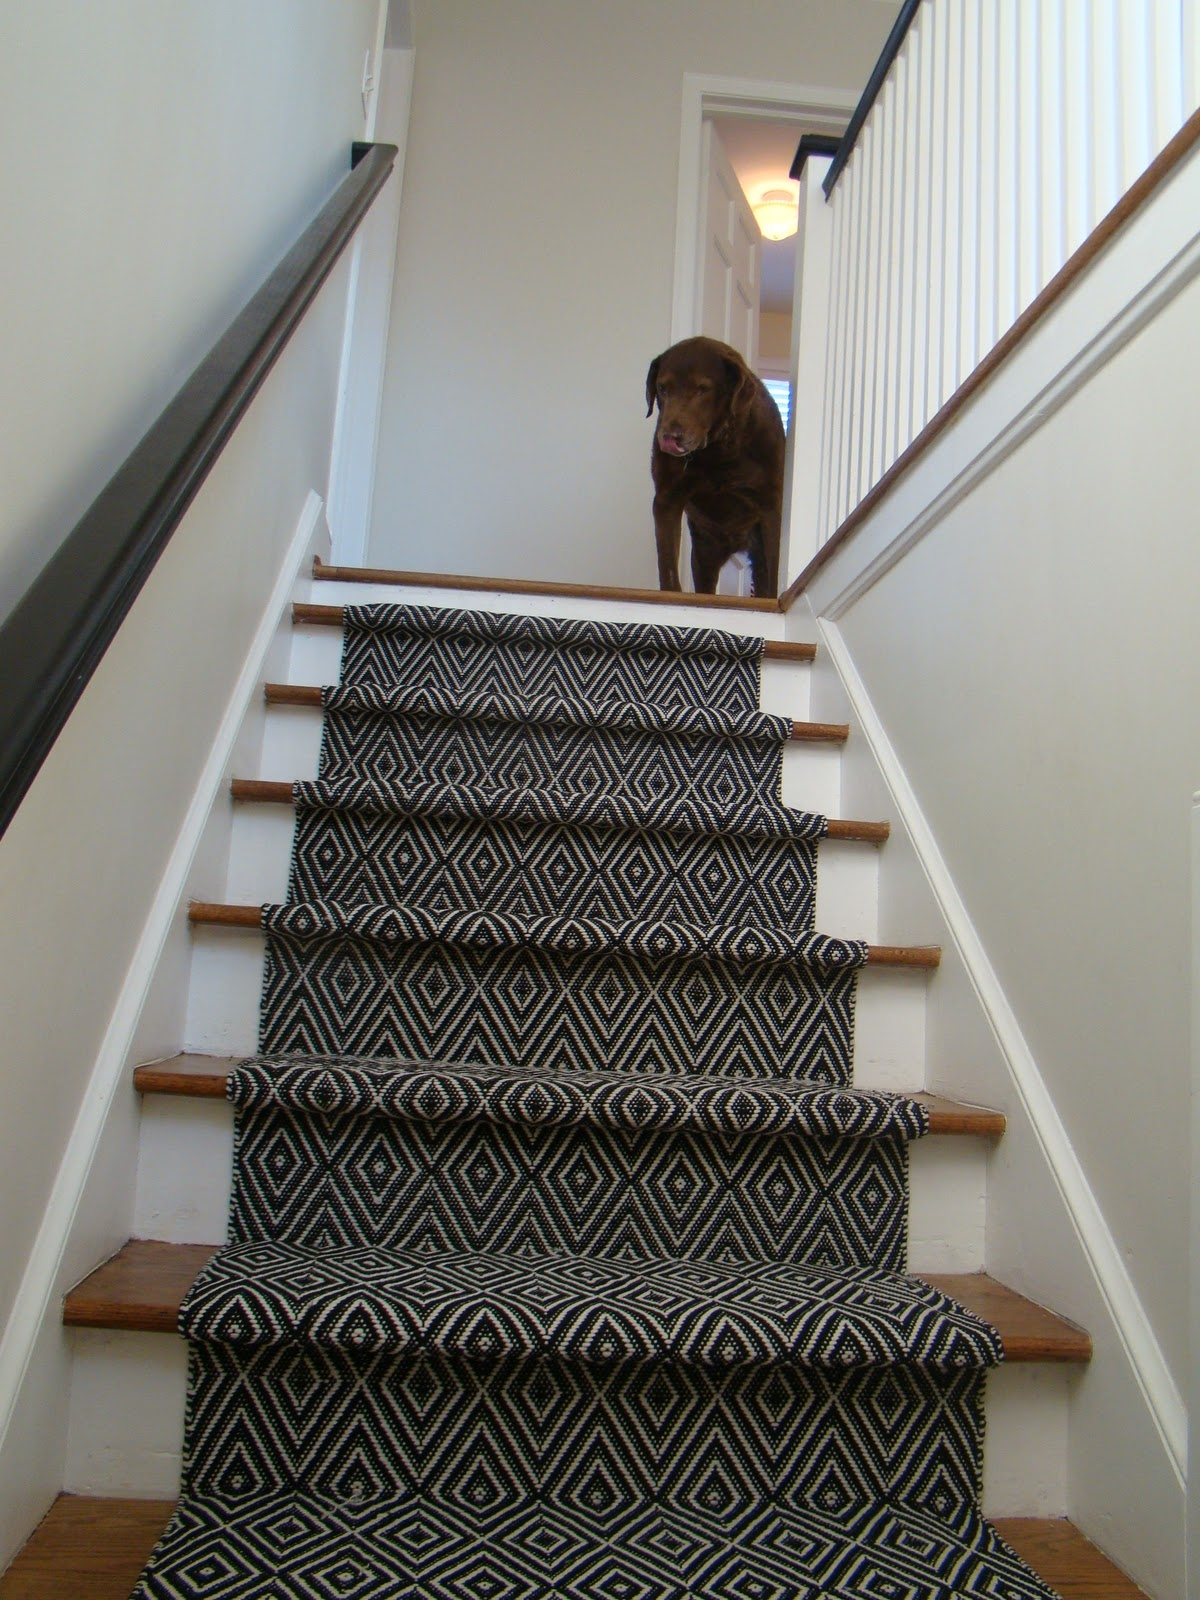 Stair Runner Black Dog Design Blog Regarding Hallway Runners For Dogs 19 Of 20